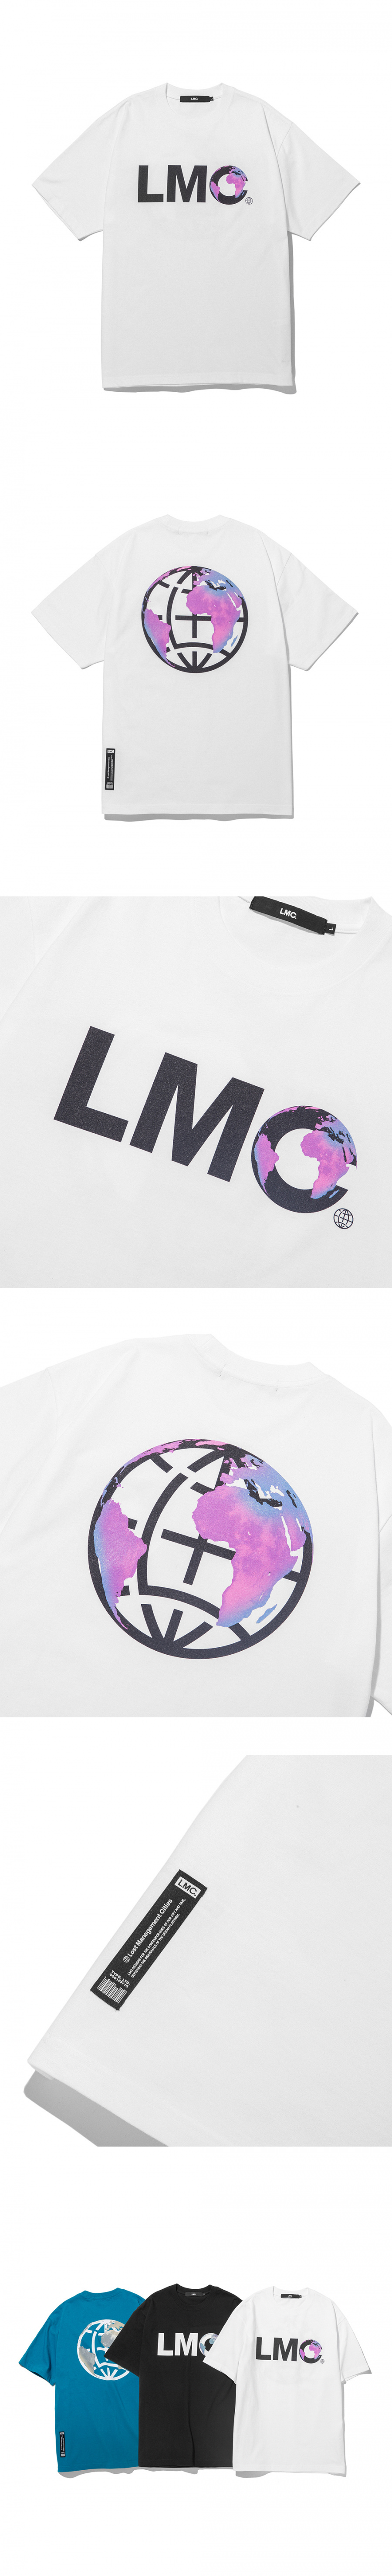 엘엠씨(LMC) LMC EARTH LOGO TEE white